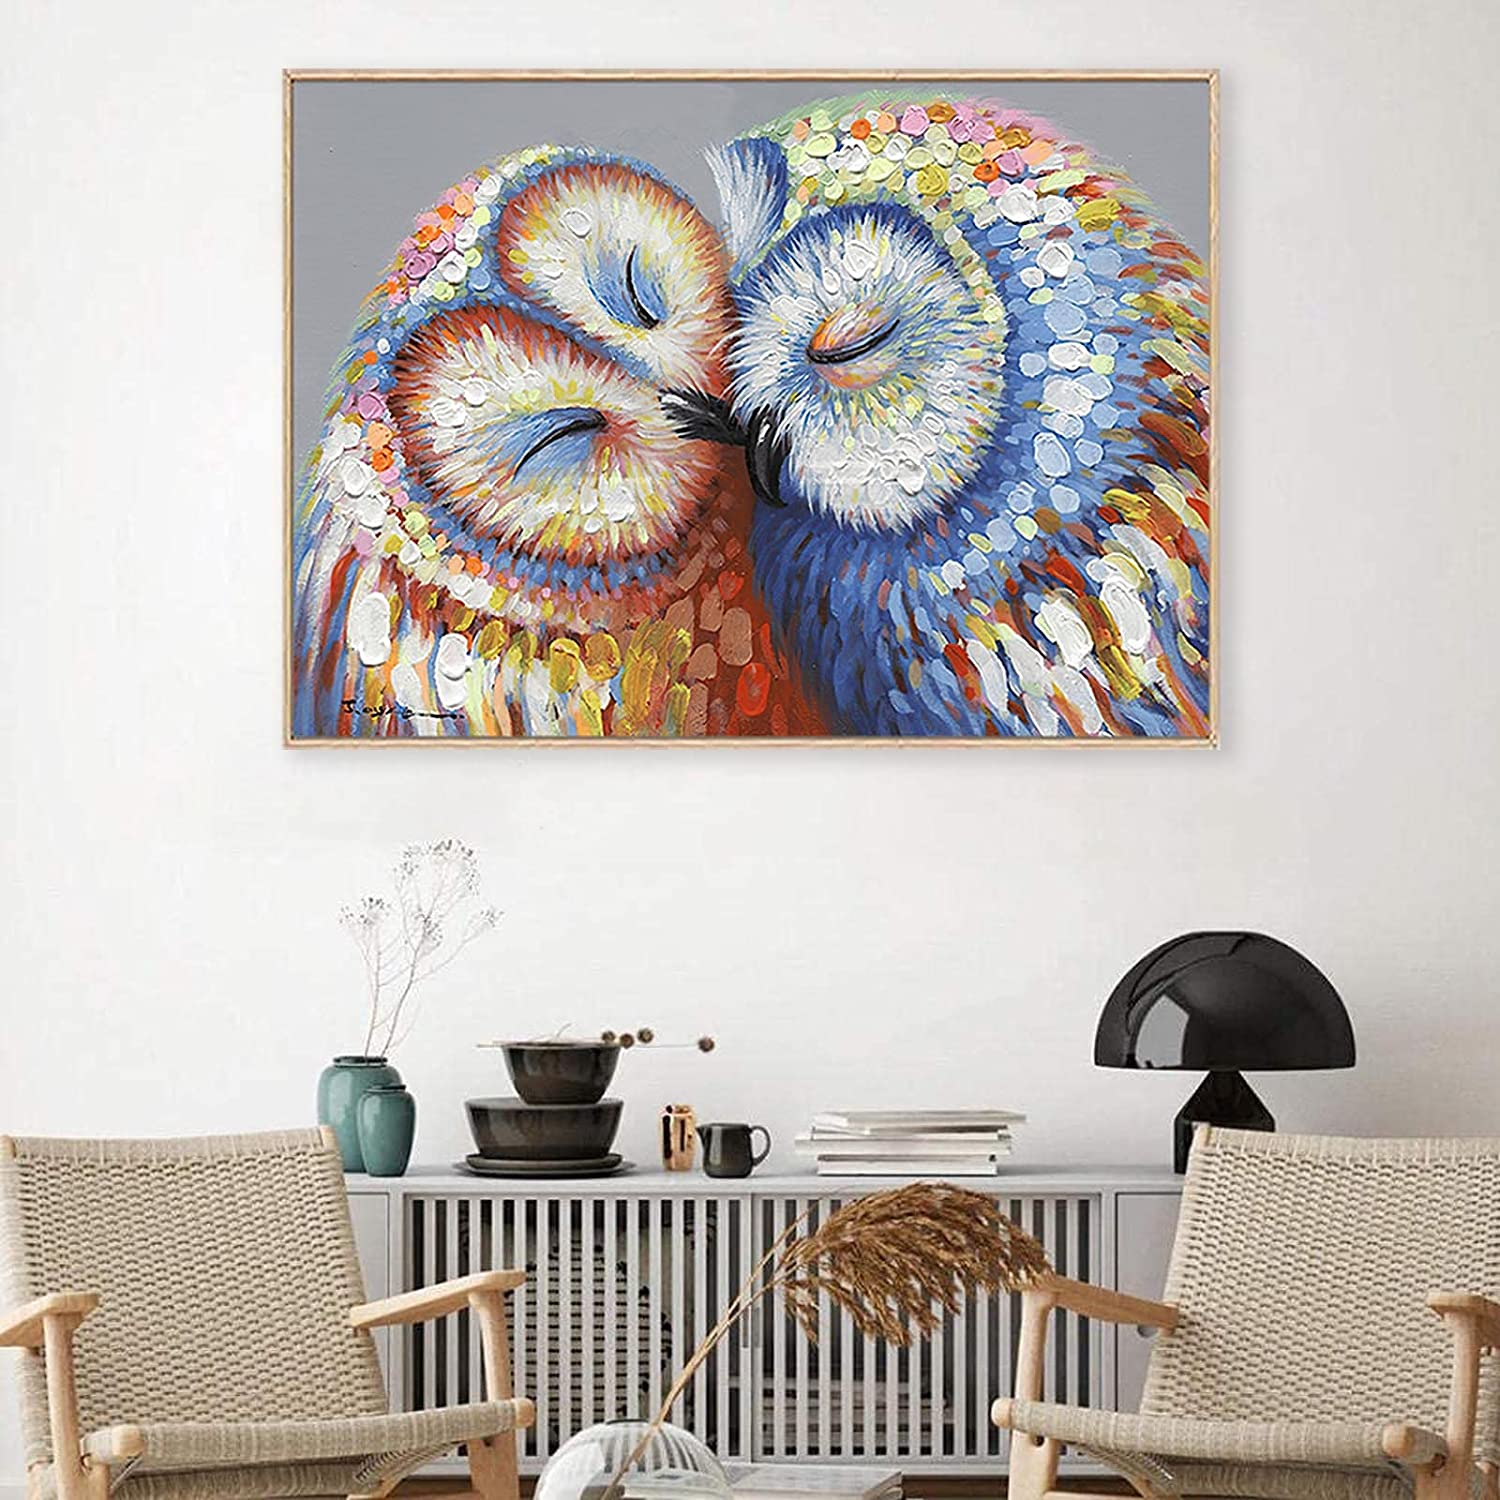 Owls Couple Wall Art Kissed Owls Couple Canvas Print Owl Wall Art Canvas Picture for Home Decor Owl Canvas Painting Wall Art for Living Room Bedroom Decor 20x28inch No Frame